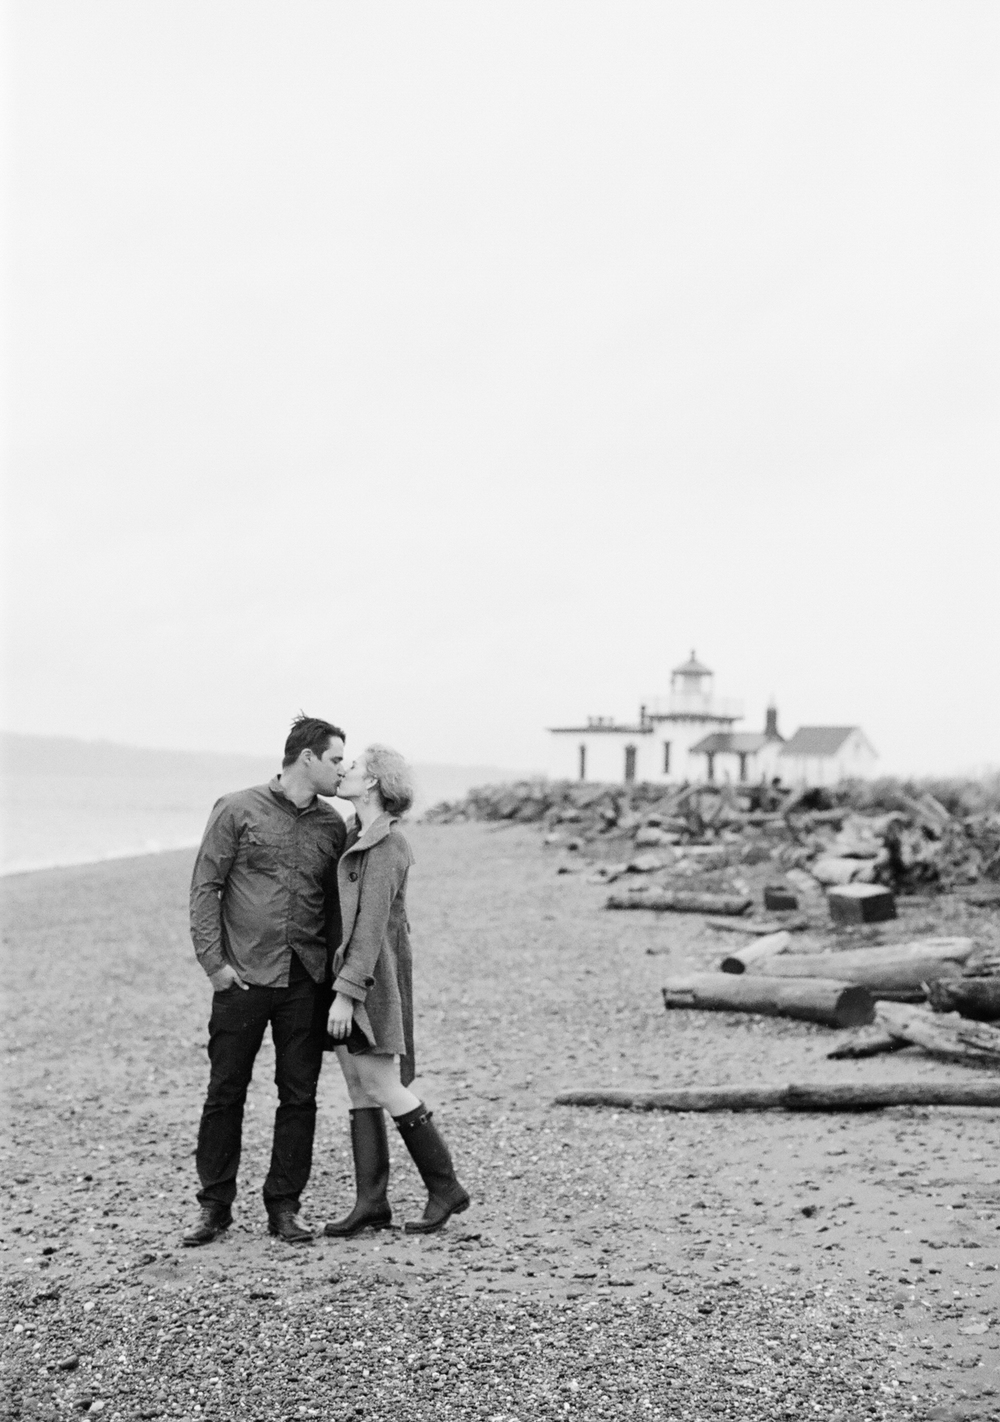 Rainy Seattle Engagement Photos-5a.jpg